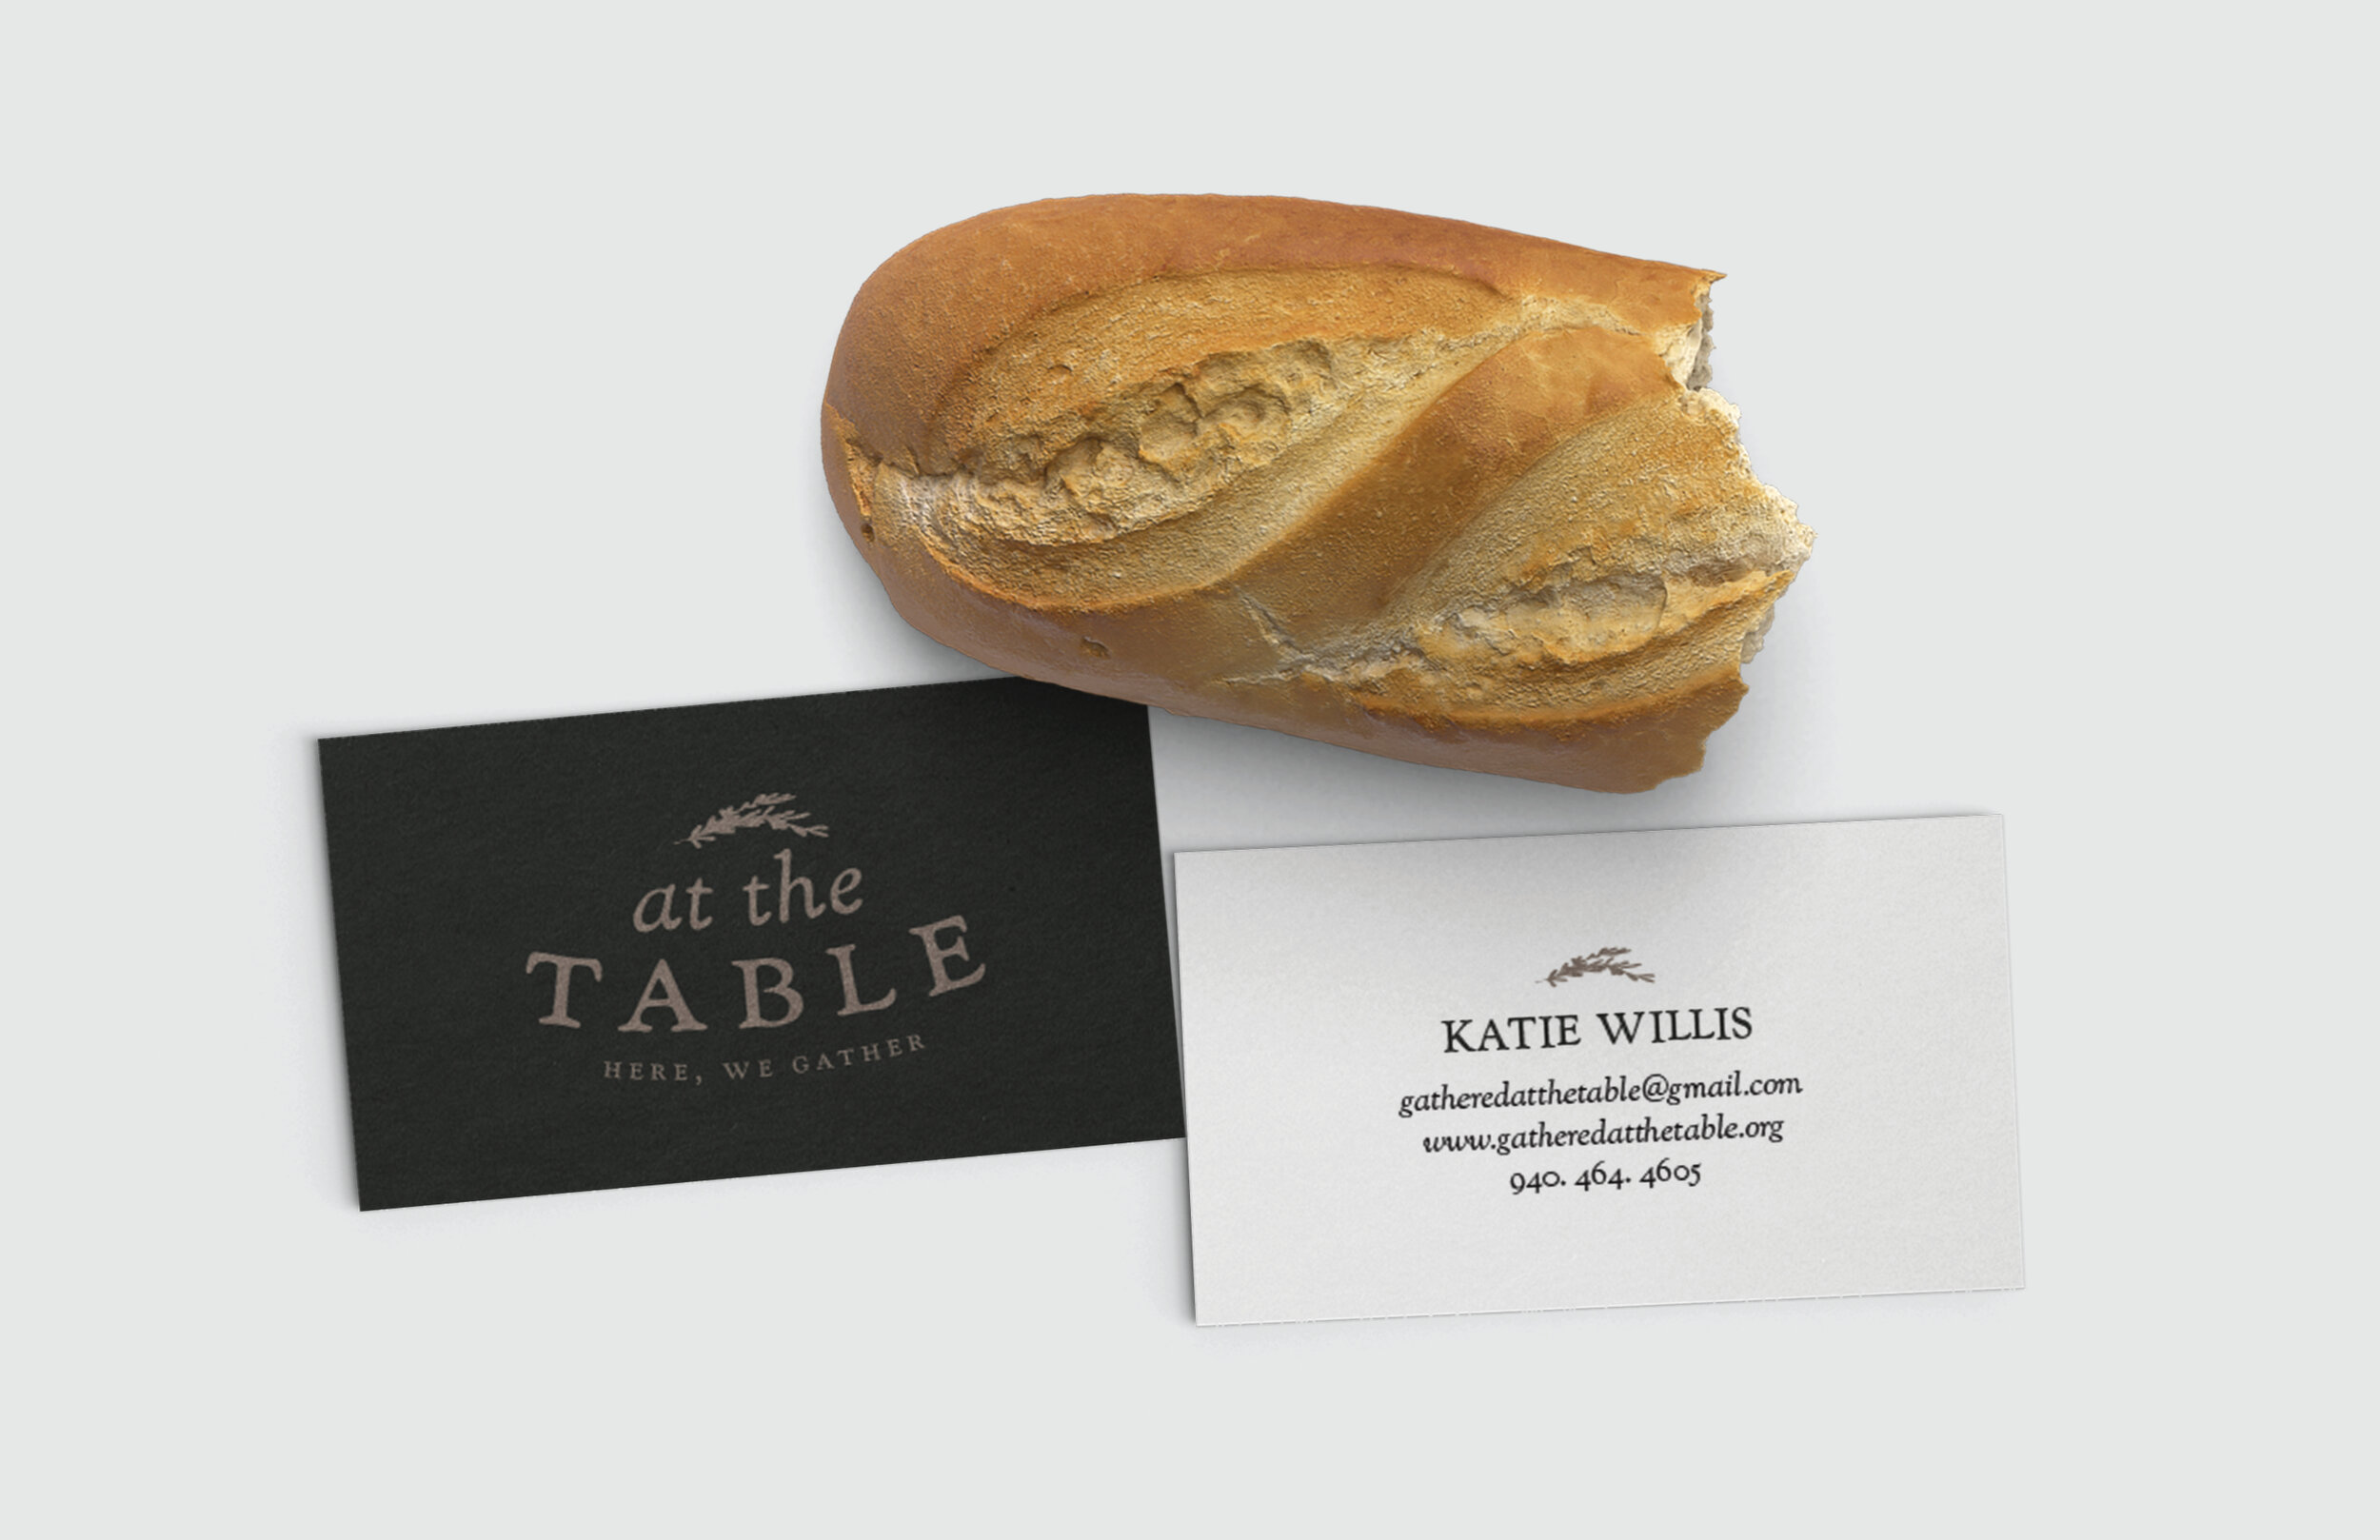 At the table_6.jpg